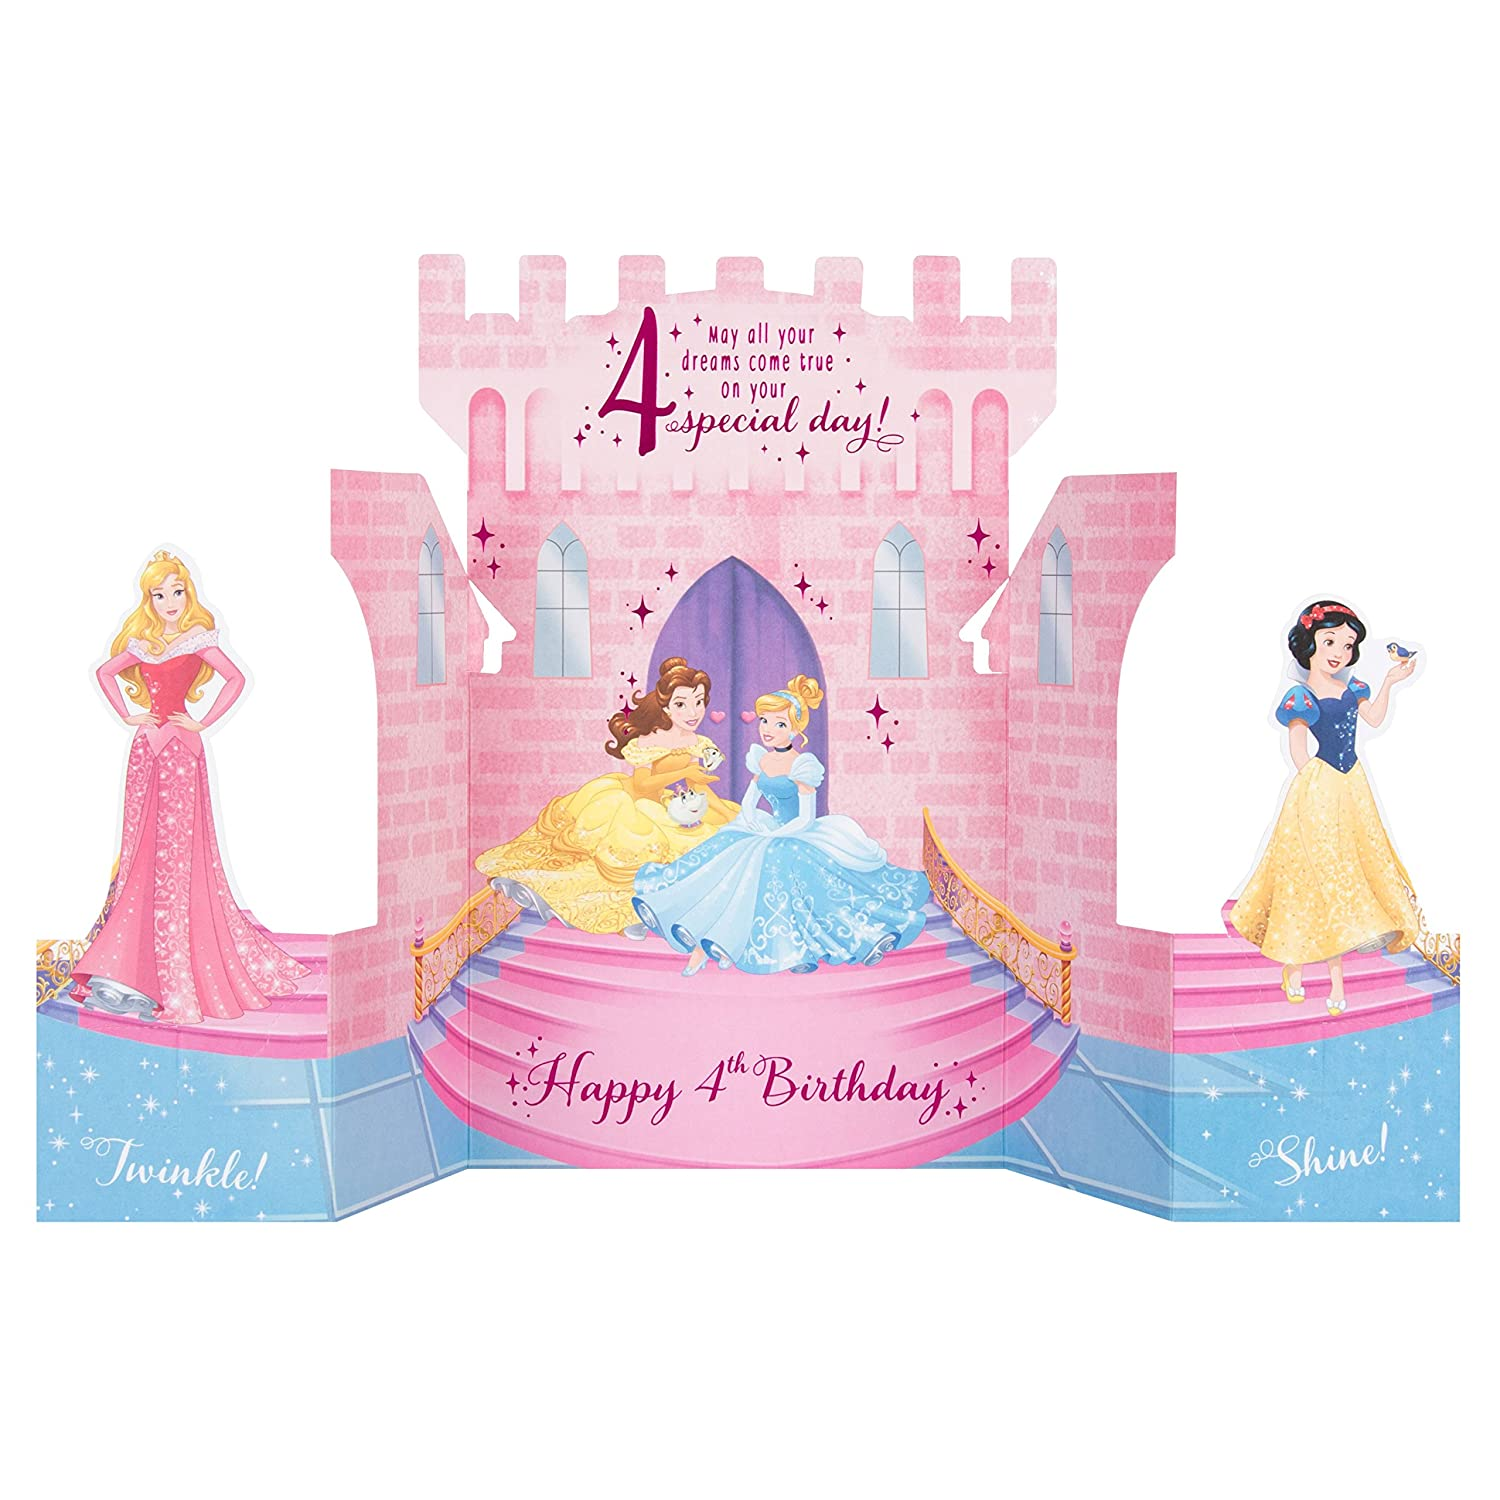 Hallmark 4th Birthday Card For Girl Fold Out House Medium